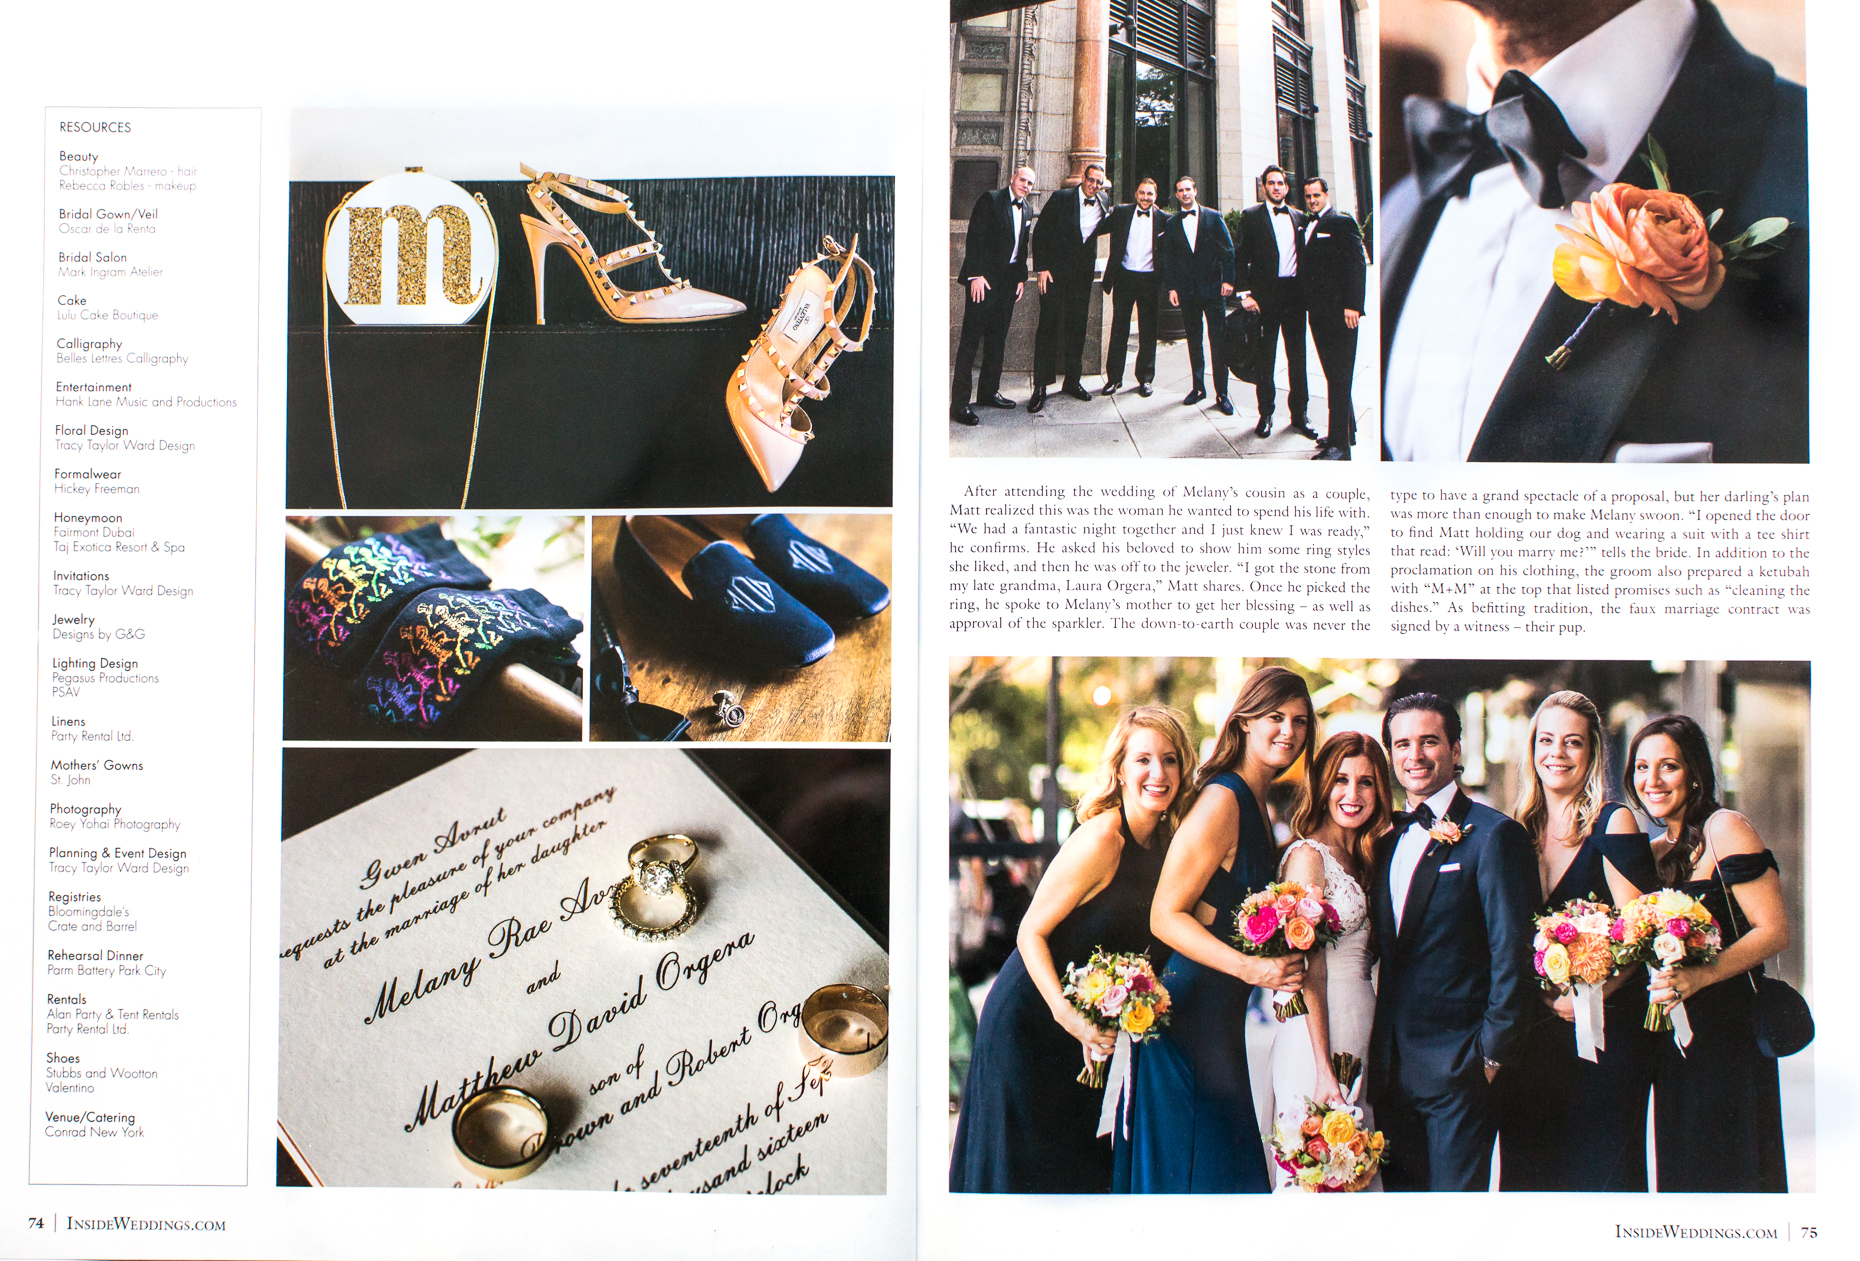 104_InsideWeddings_spread2_spring2017